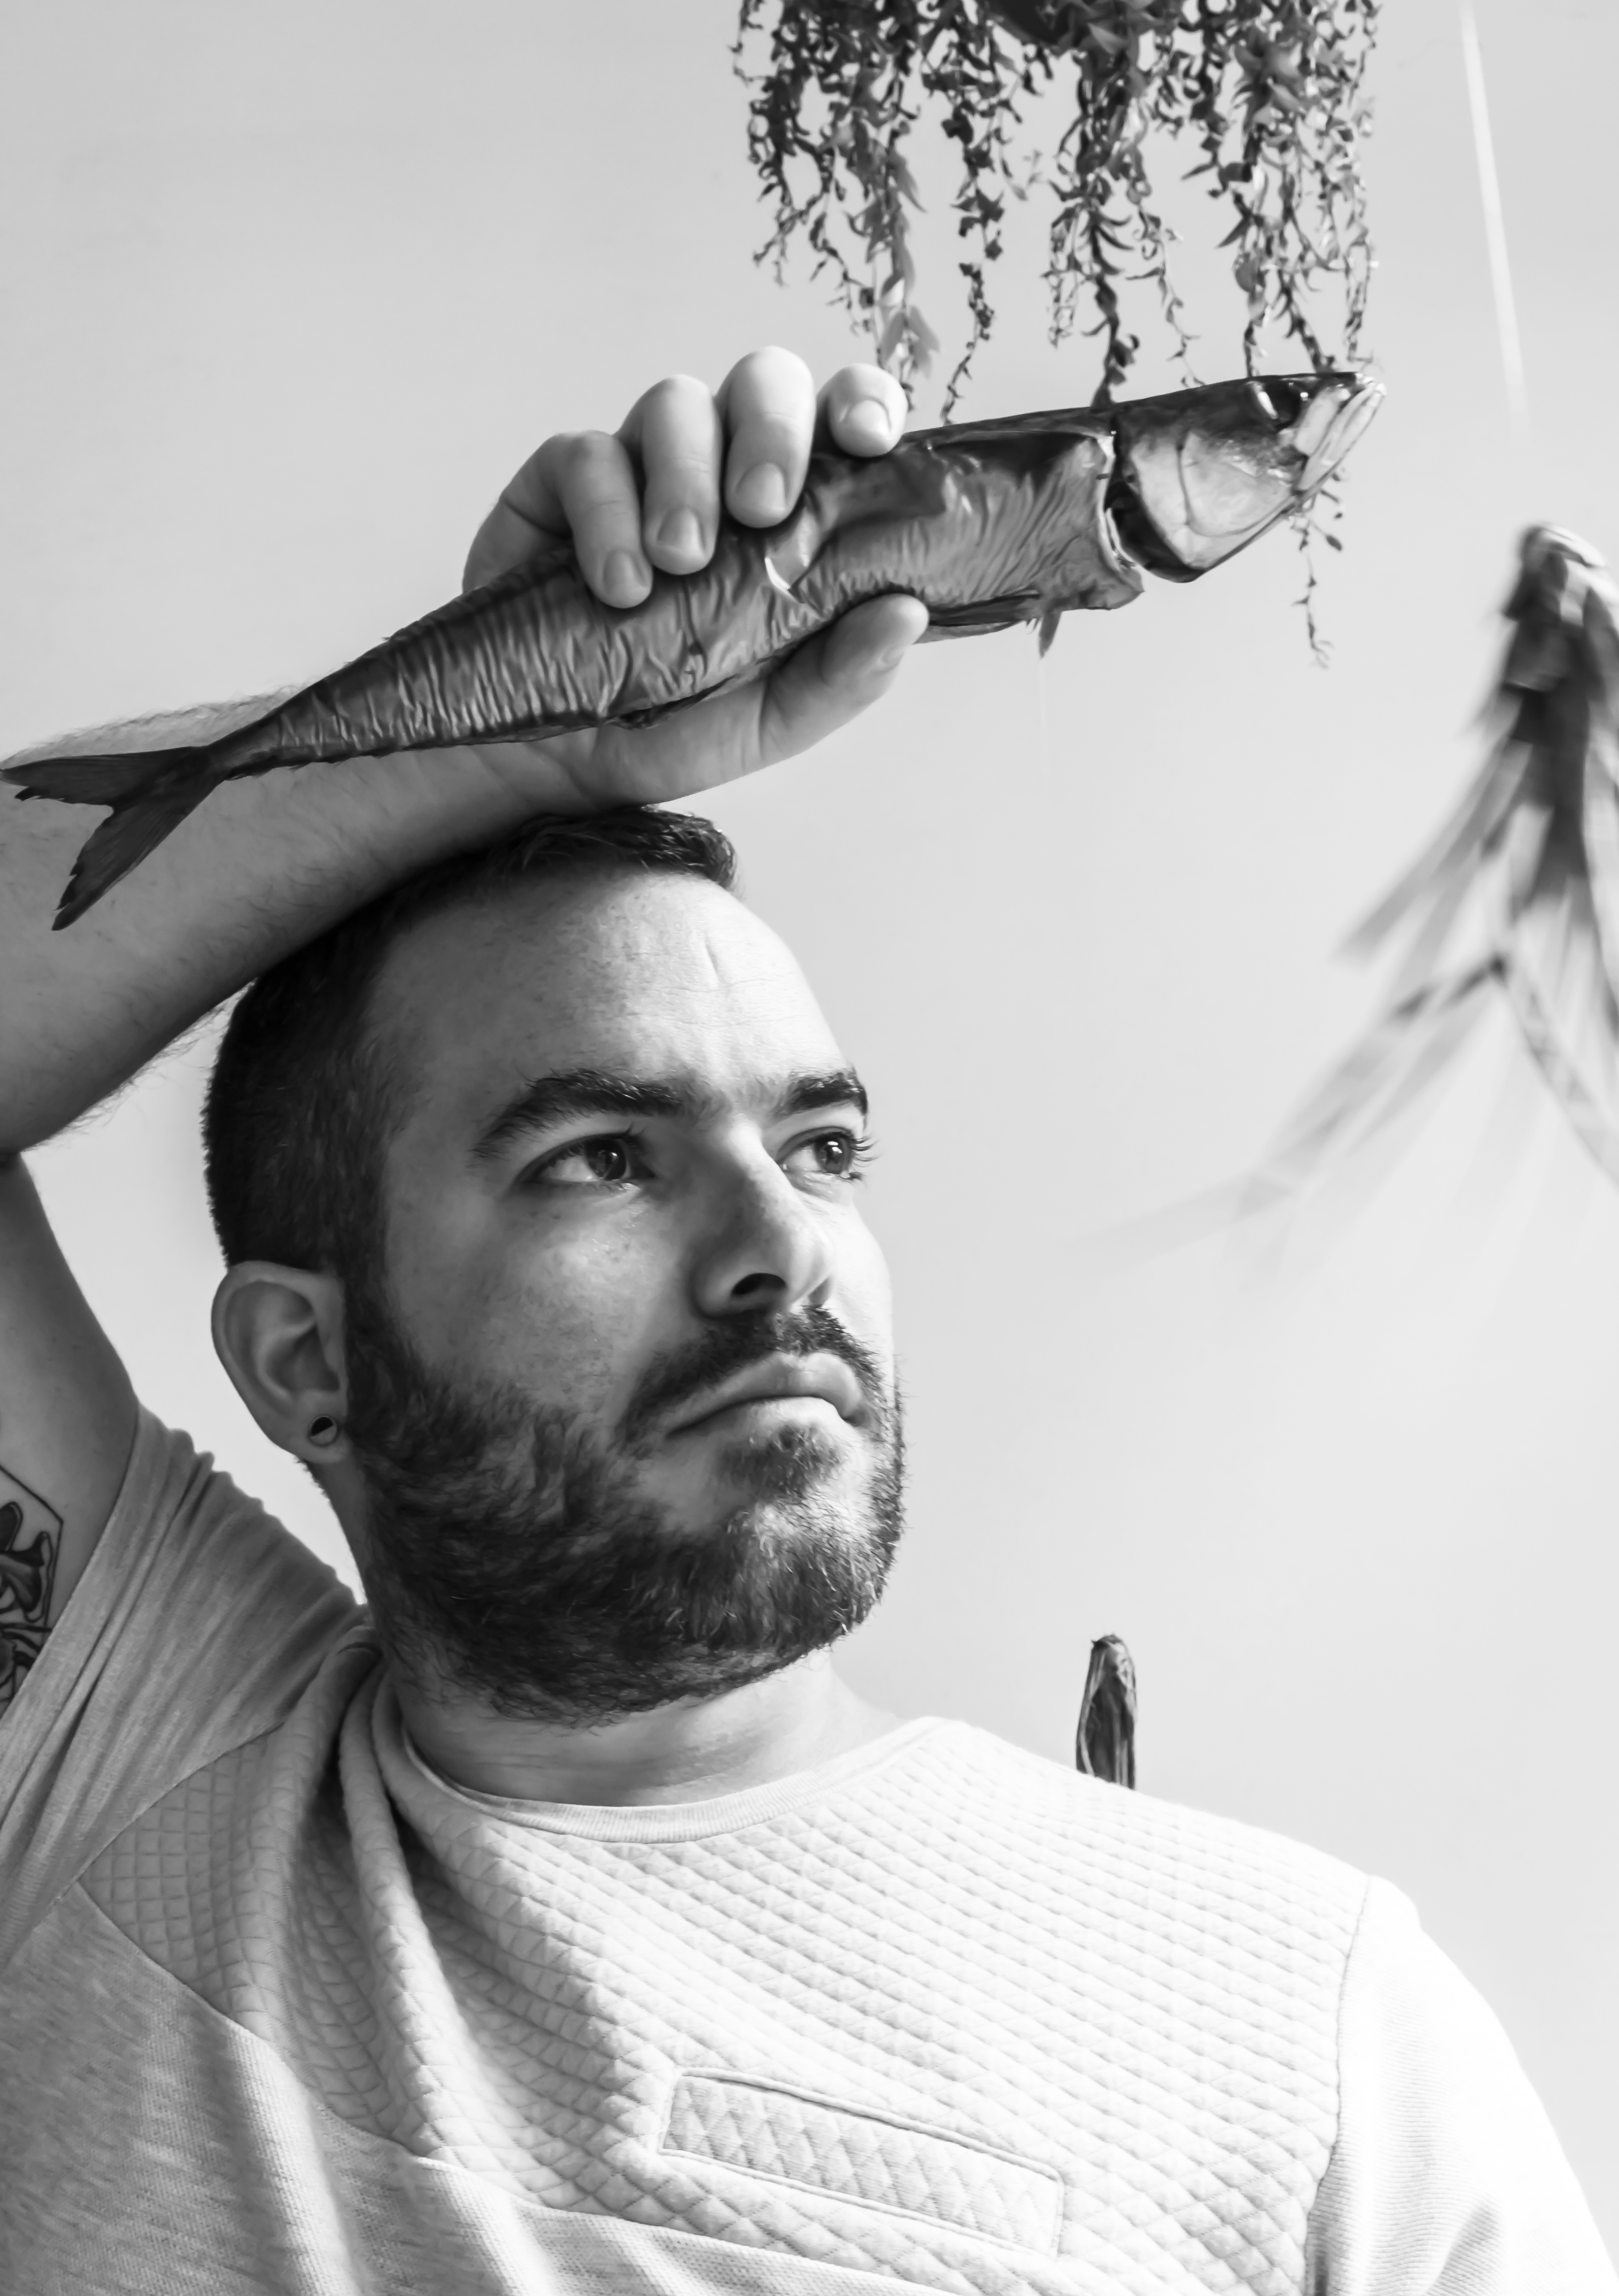 Ido Garini is the founder and creative director of Studio Appétit in Amsterdam.